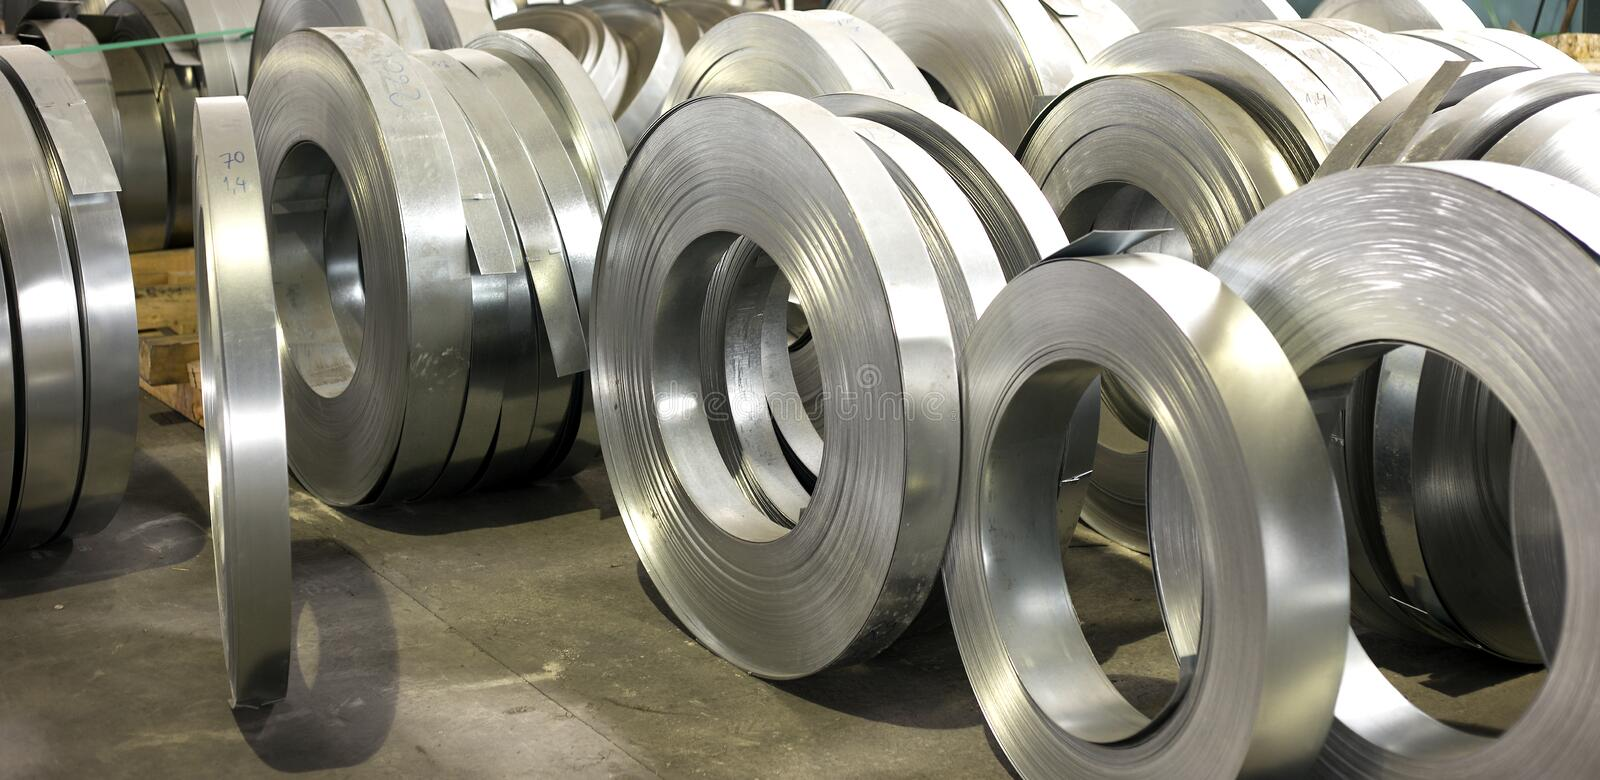 Sheet tin metal rolls. In production hall royalty free stock photo